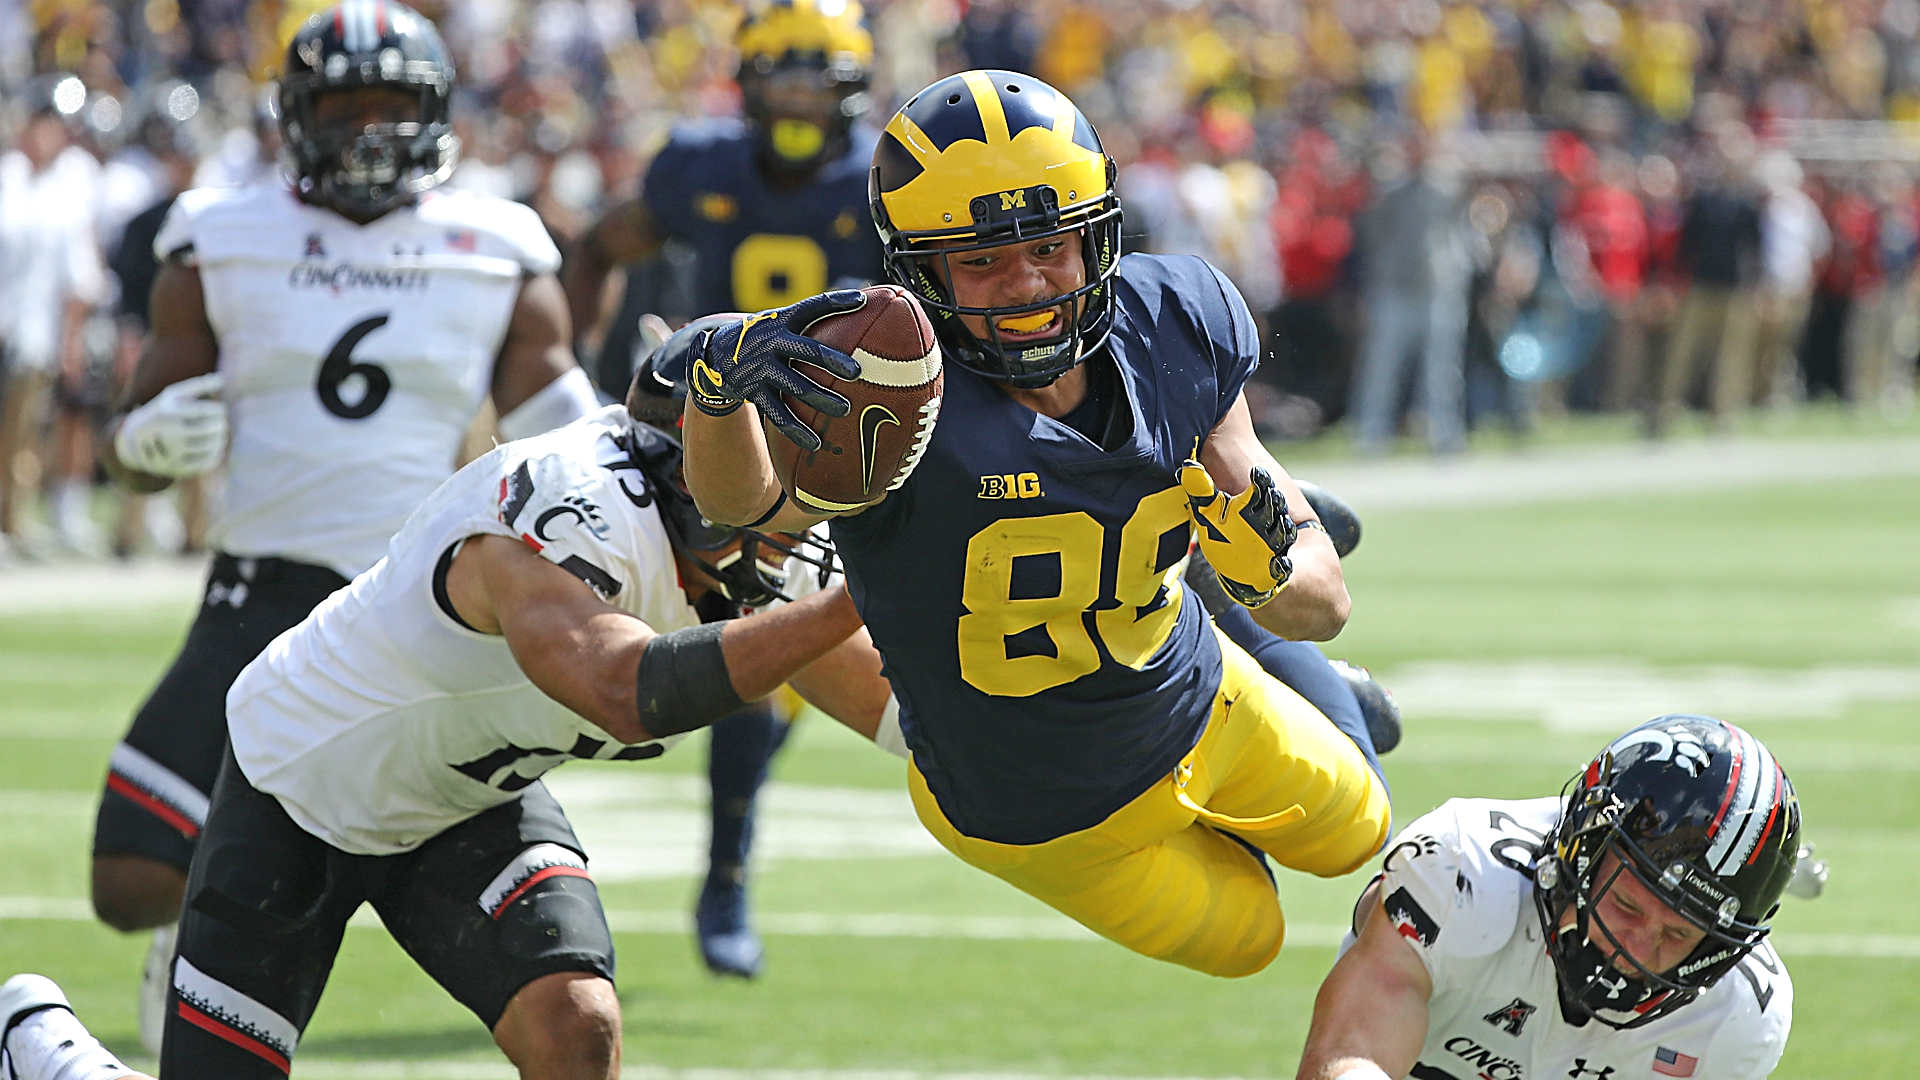 Instant Recap, Reaction, Highlights & More From Michigan's 36-14 Win Over Cincinnati